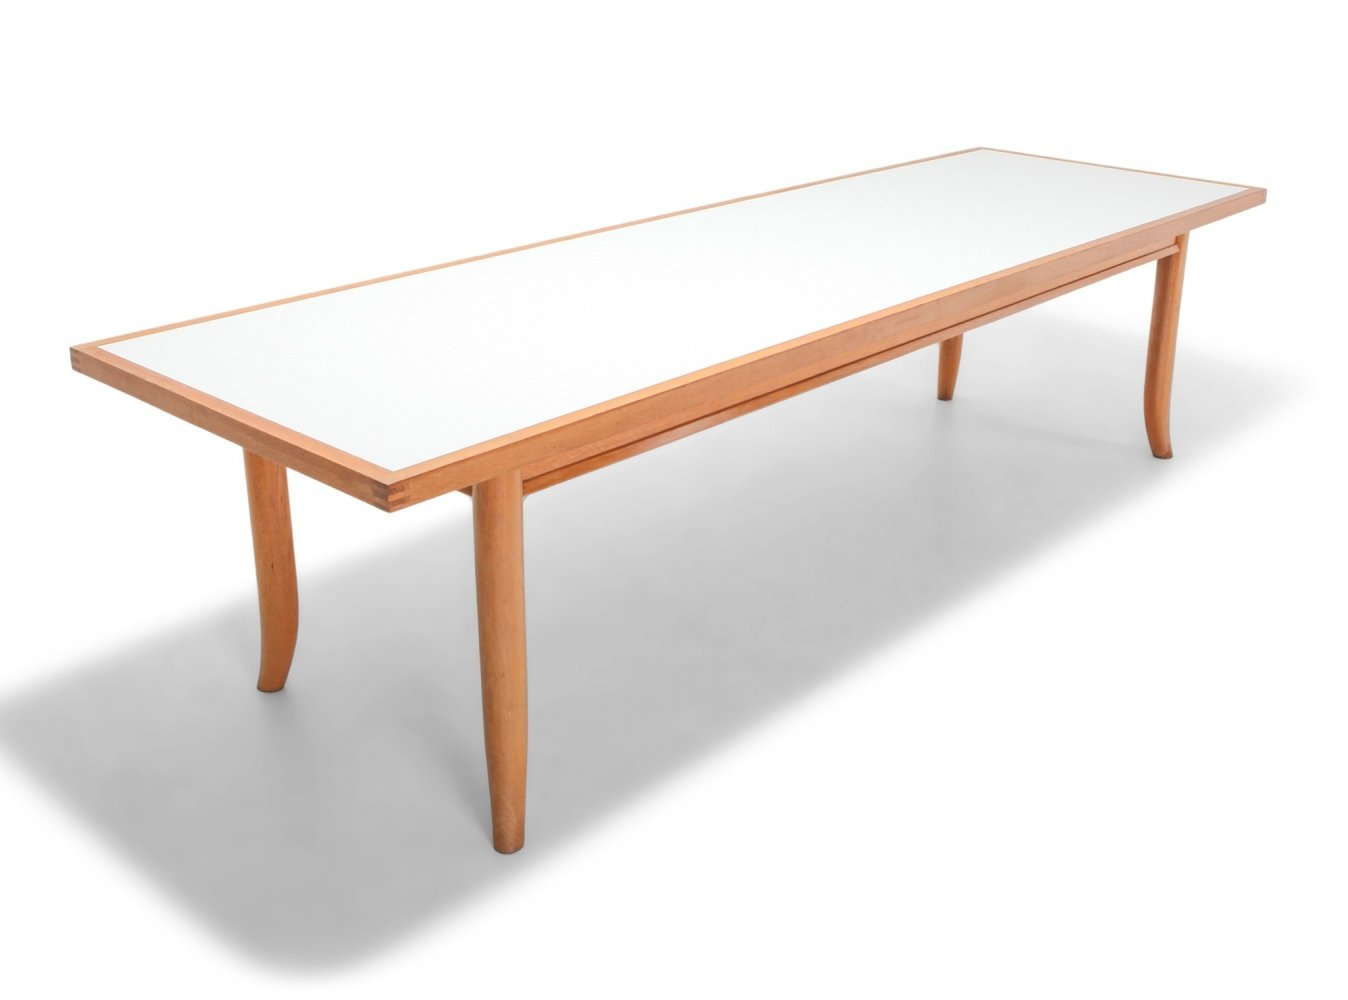 American Modern Oak Dining Table by Robsjohn Gibbings, 1970s